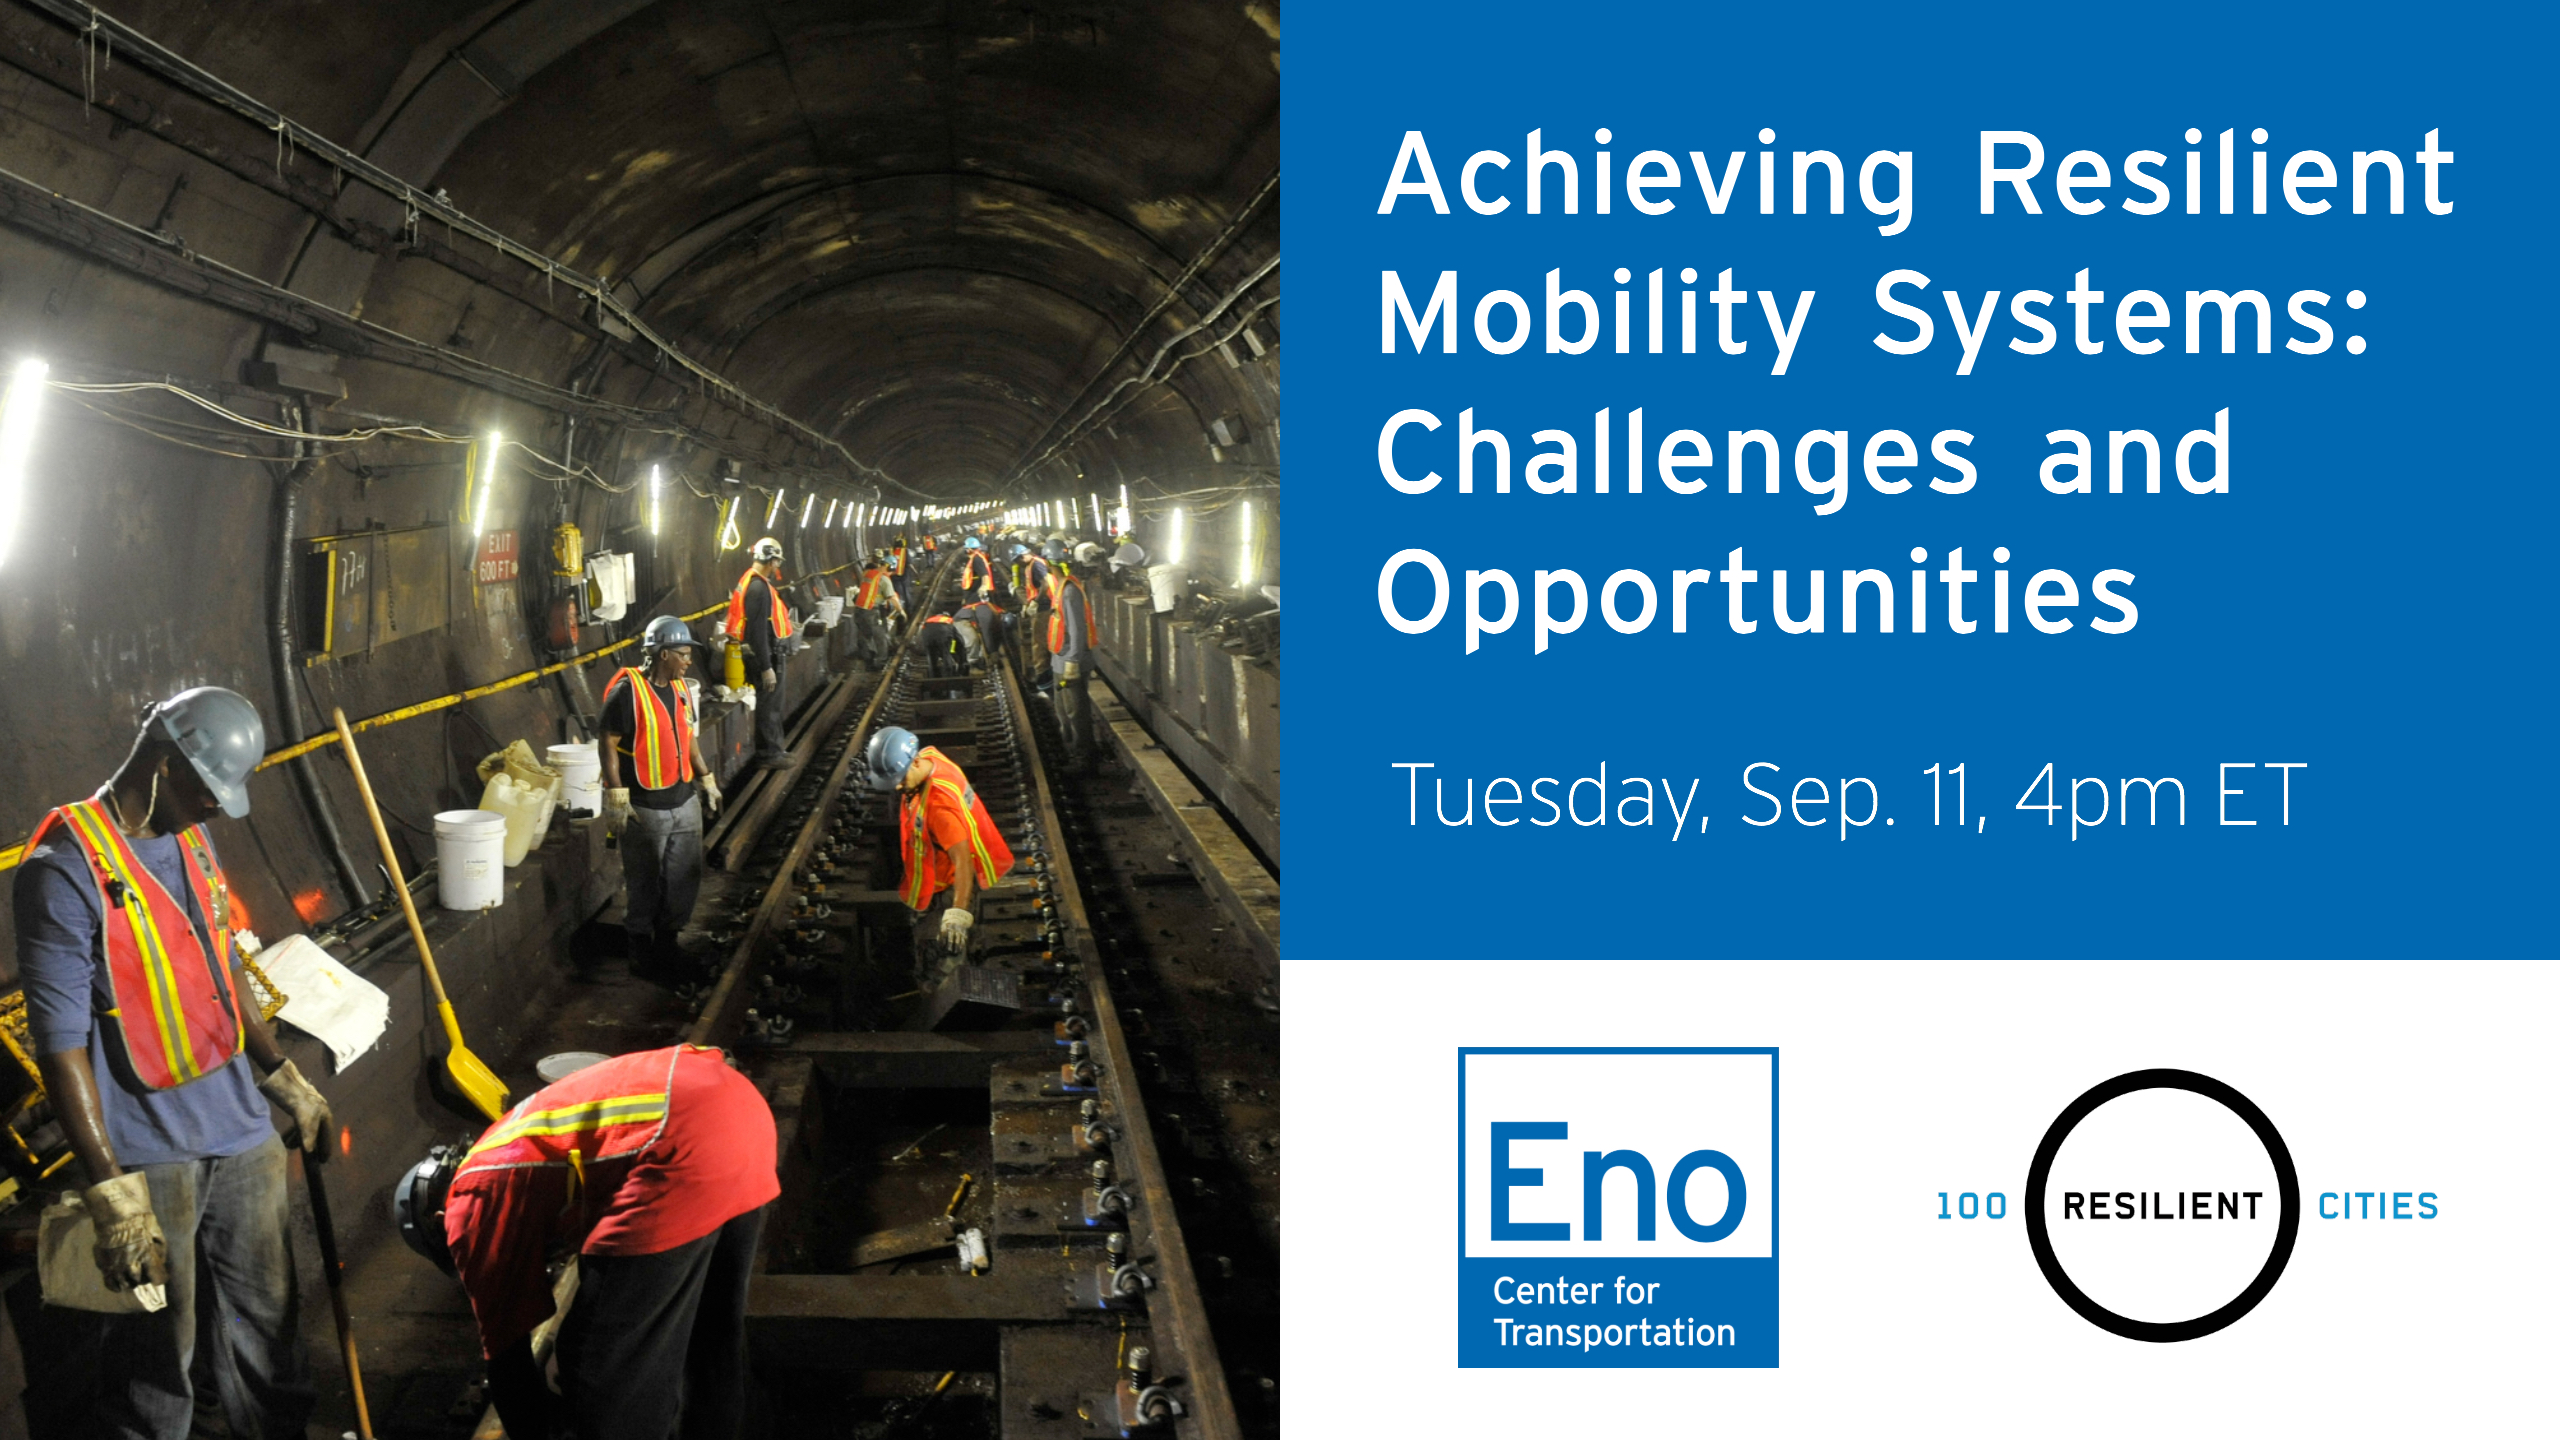 Achieving Resilient Mobility Systems: Challenges and Opportunities